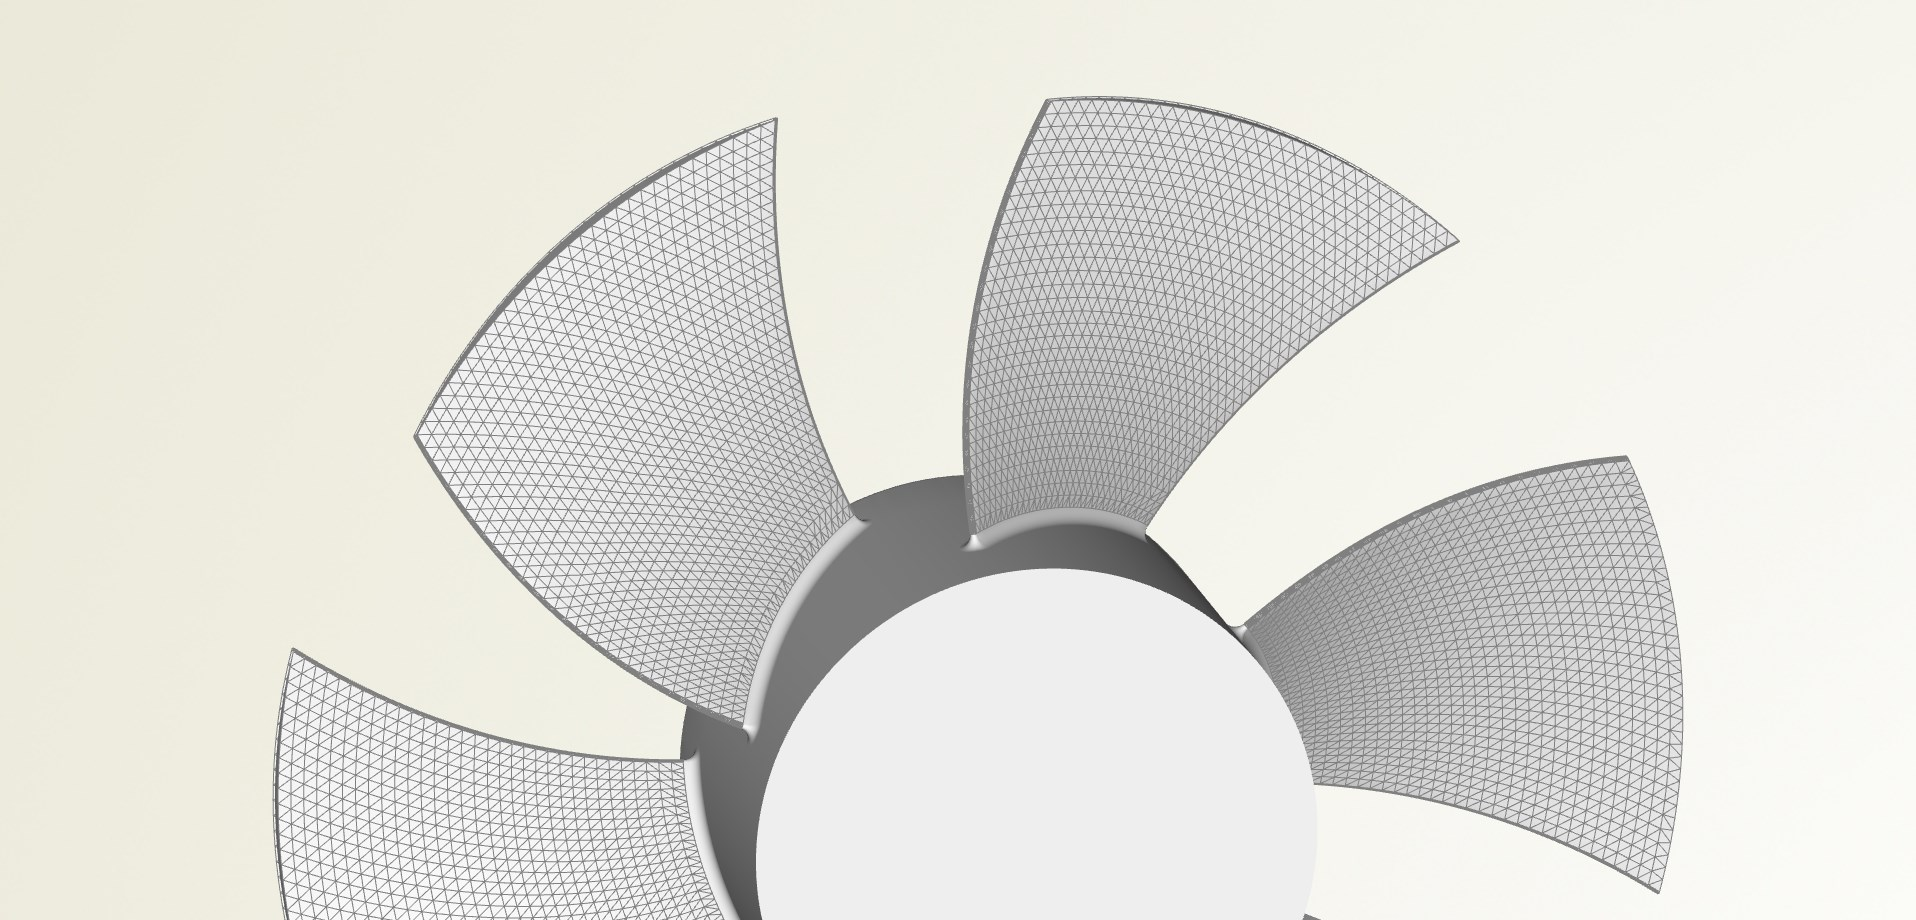 STL data axial fan